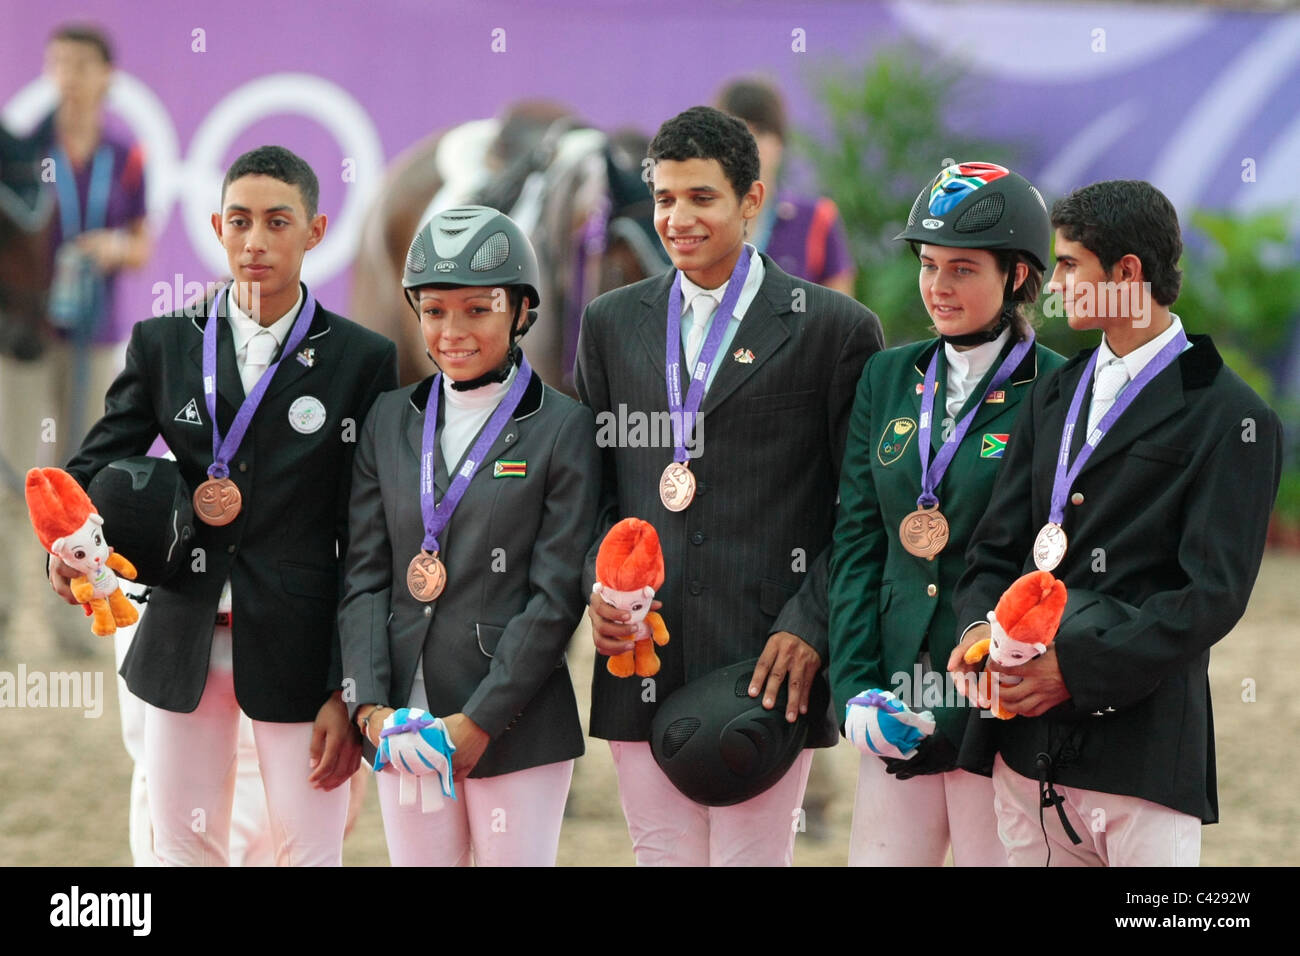 Team Africa clinches the bronze medal in the 2010 Singapore Youth Olympic Games Equestrian Team Jumping. - Stock Image